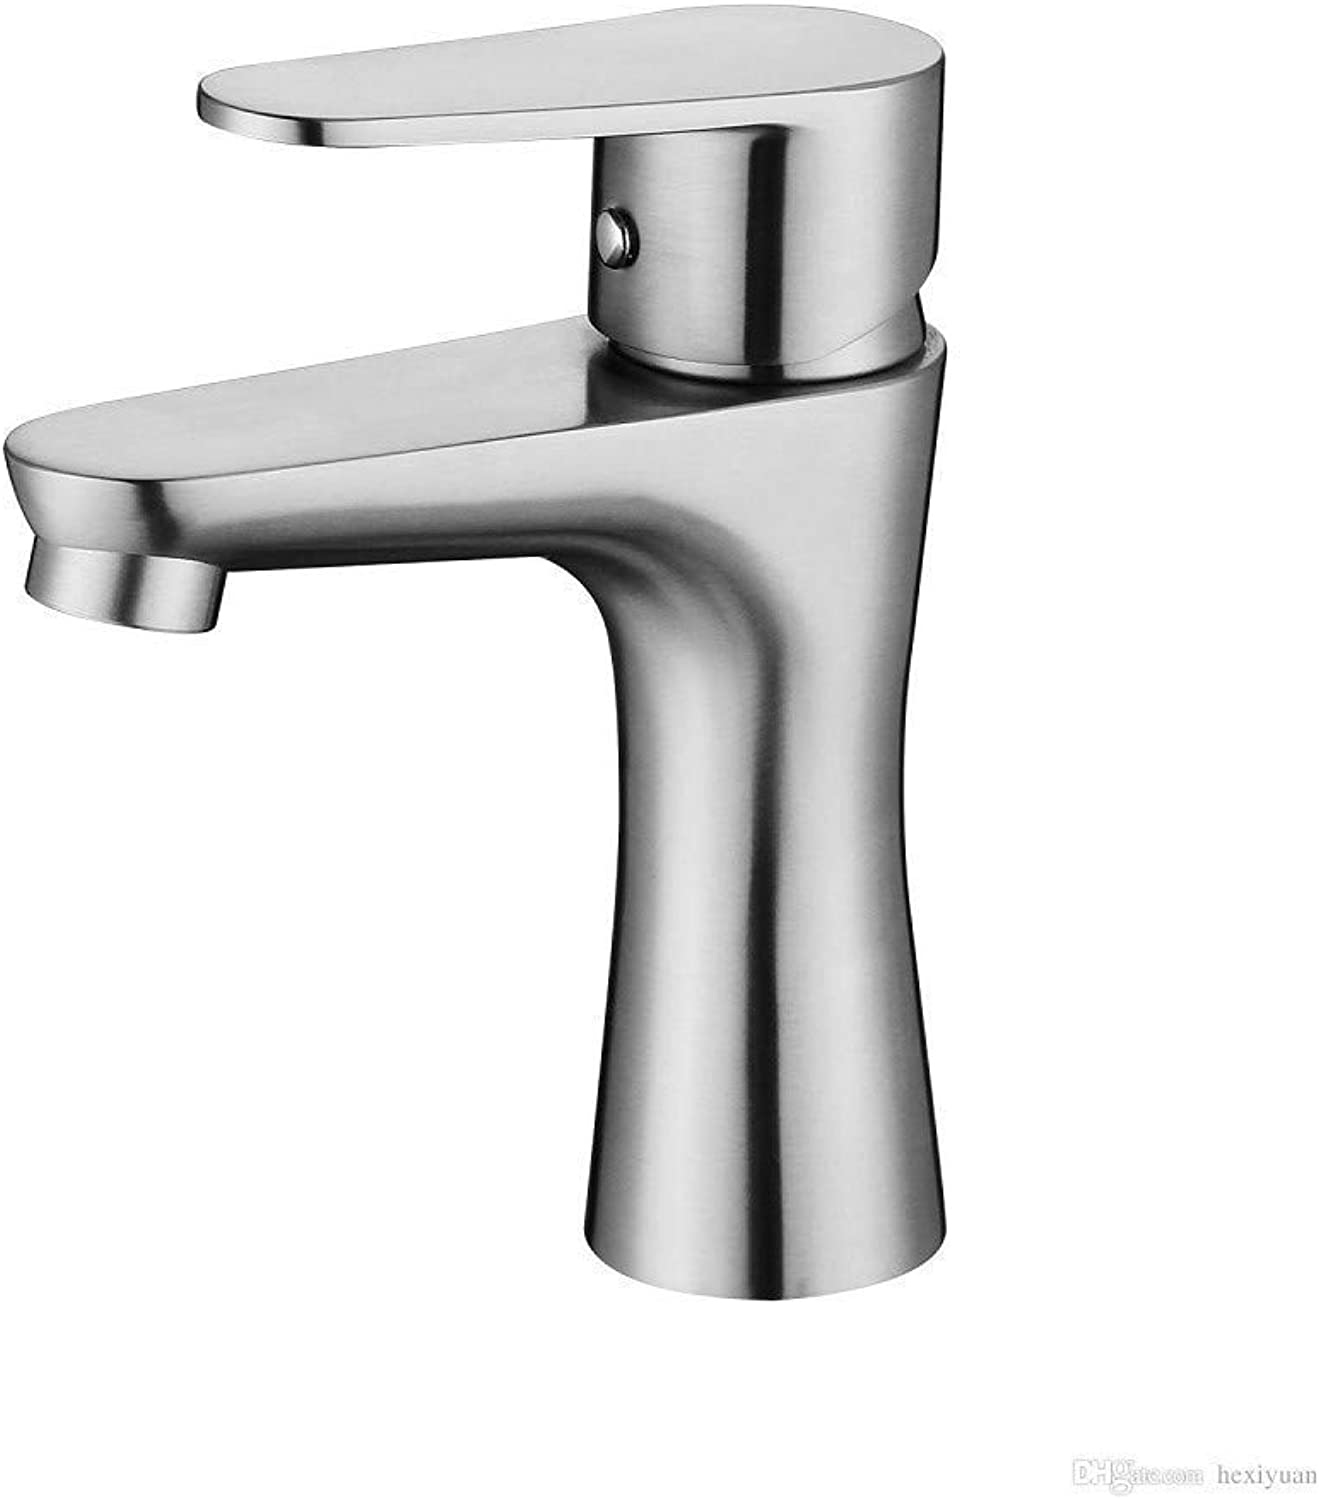 FuweiEncore 304 Stainless Steel Sink Faucet Basin Small Waist Hot and Cold Water Tap (color   -, Size   -)